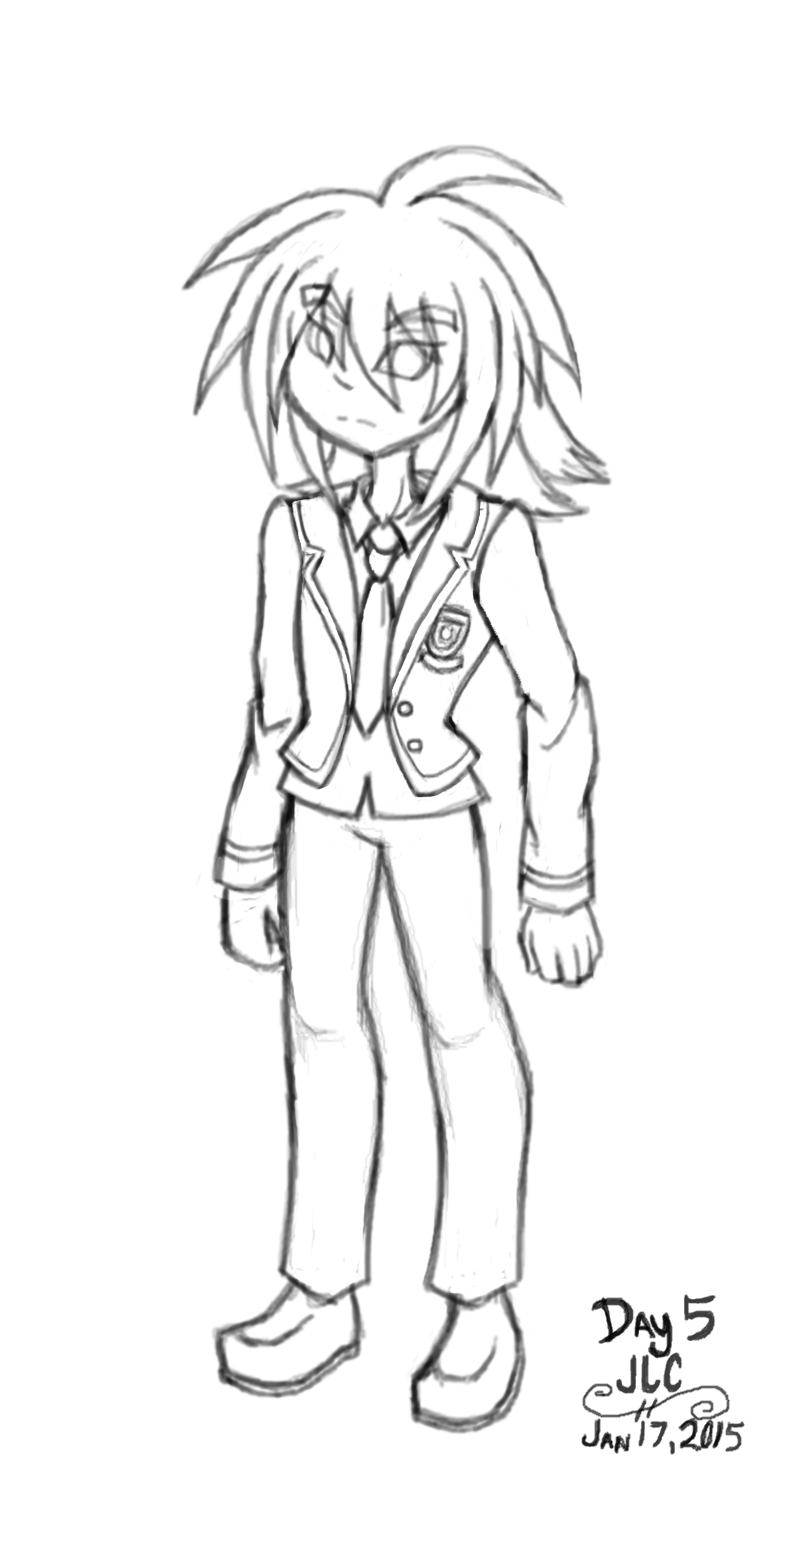 Art Challenge 5 - Uniform Kuro